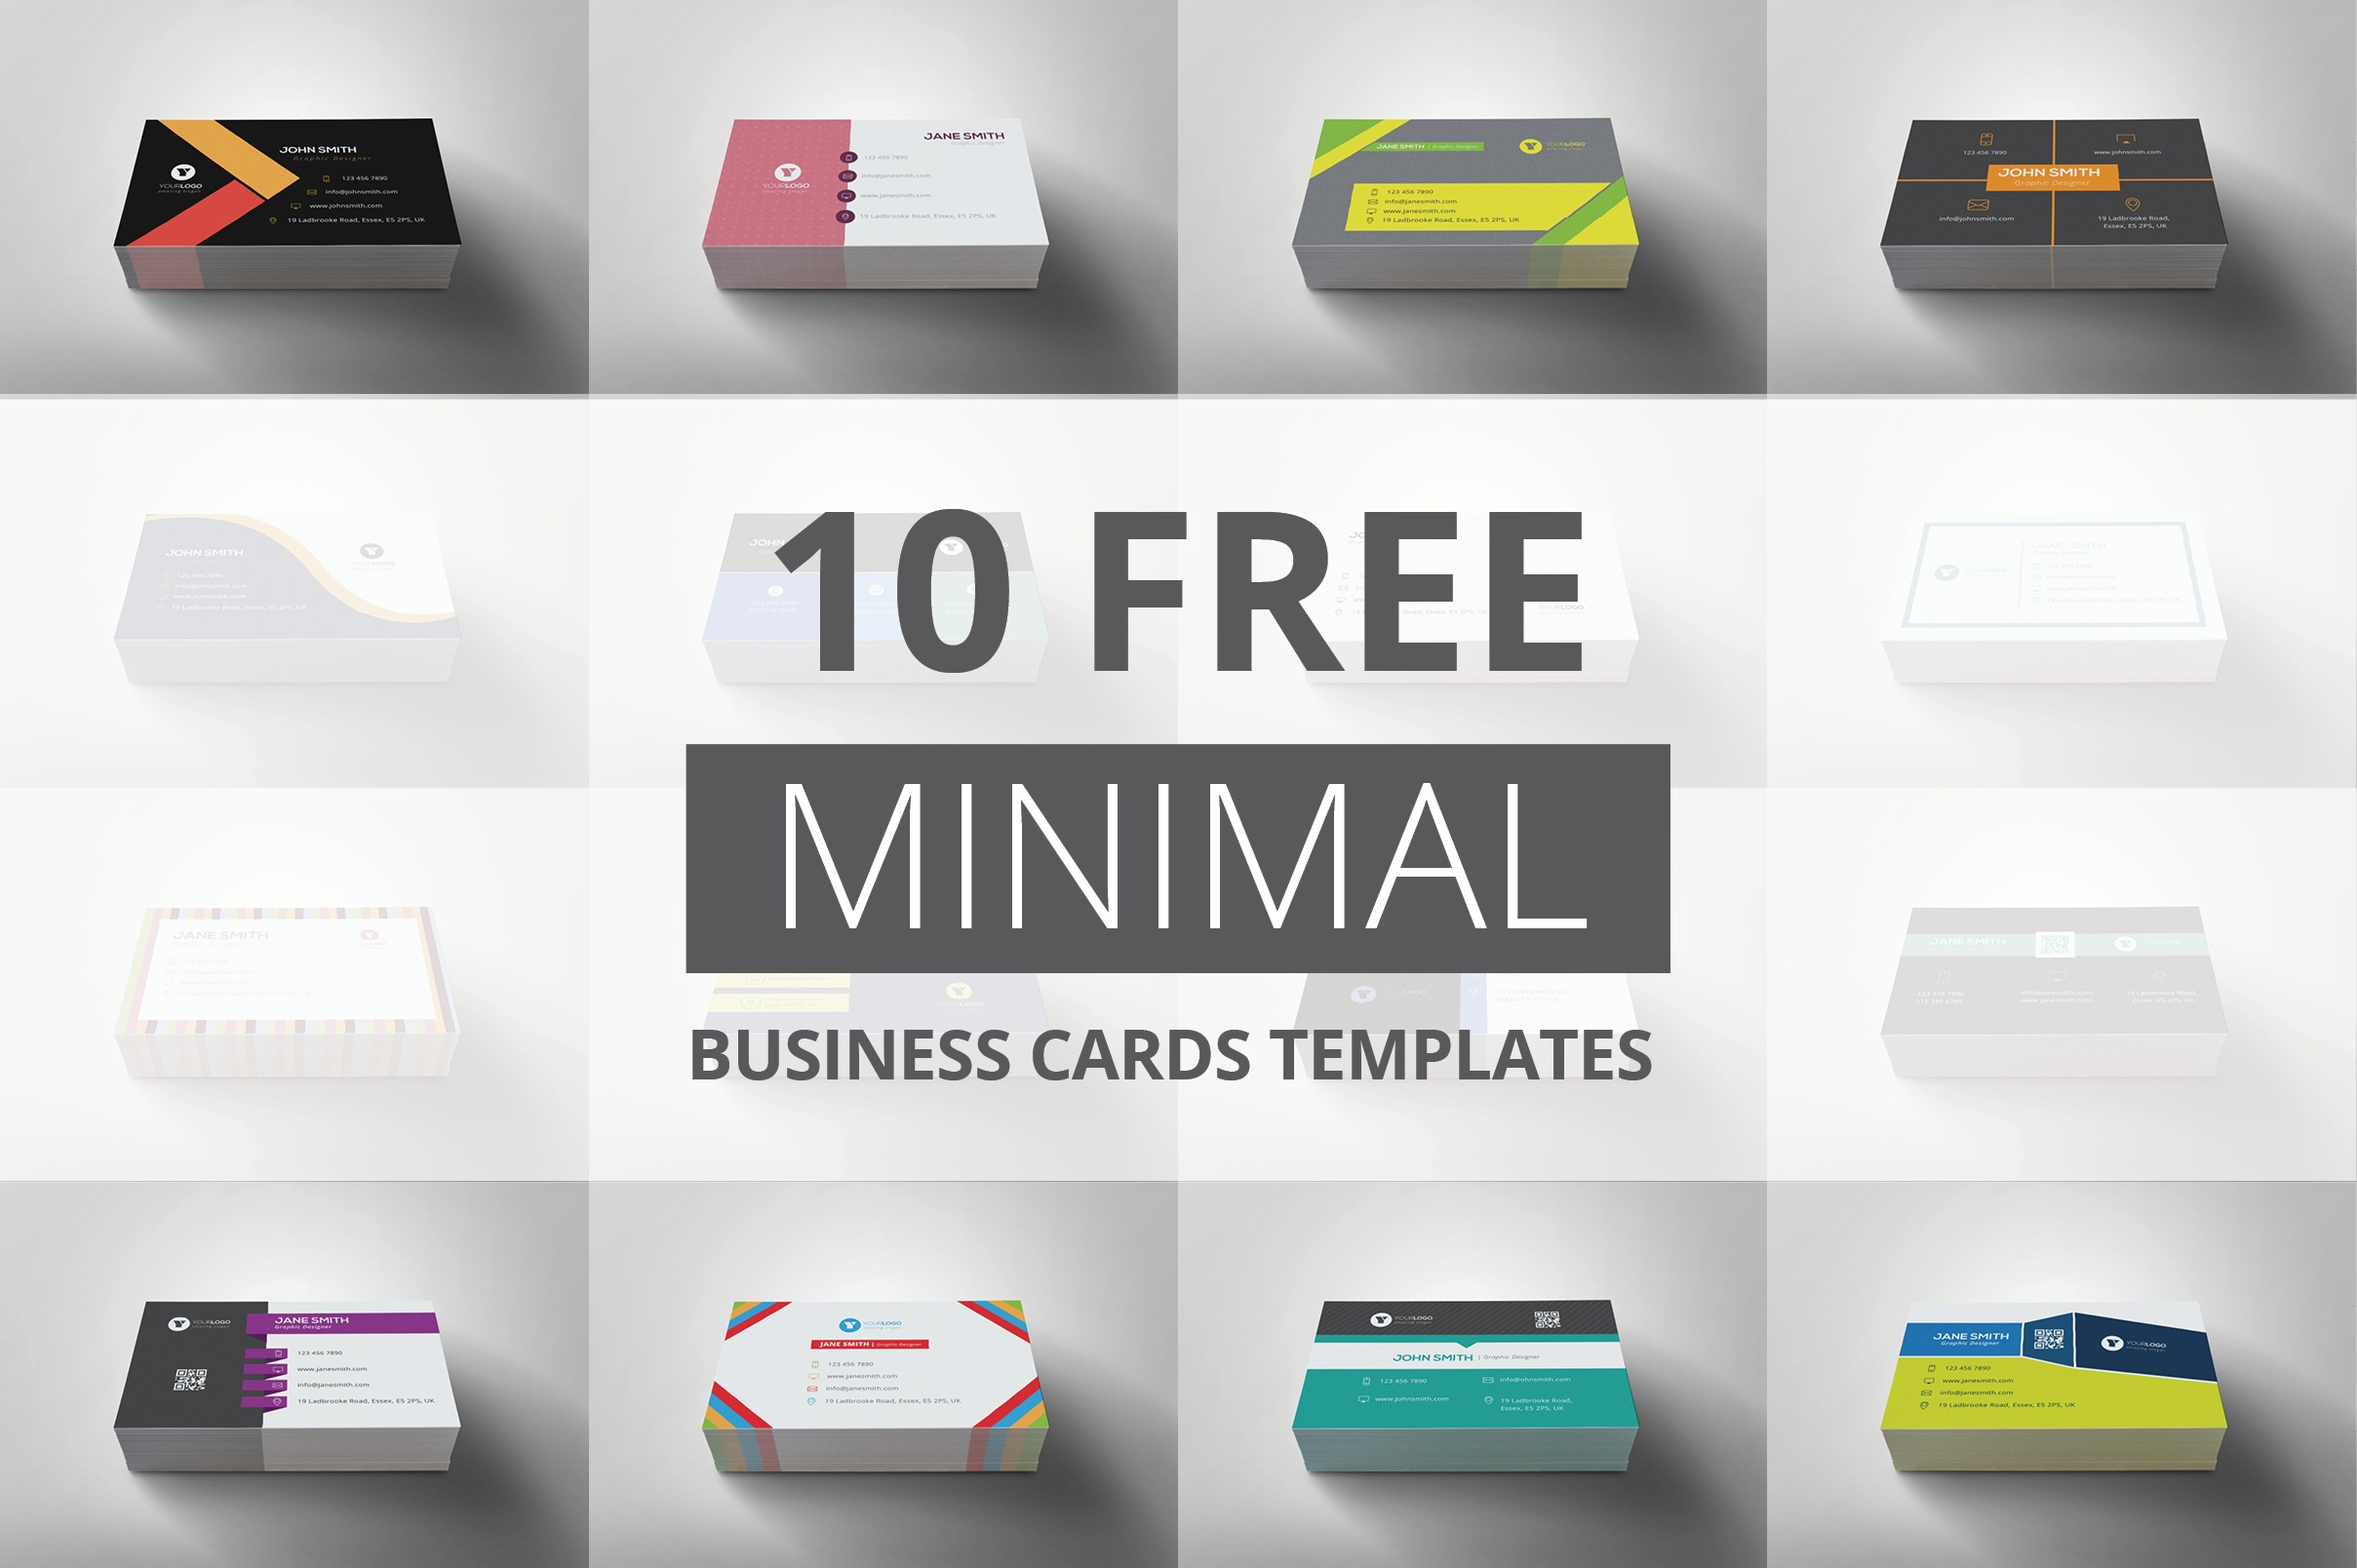 10 Free Minimal Business Cards Templates